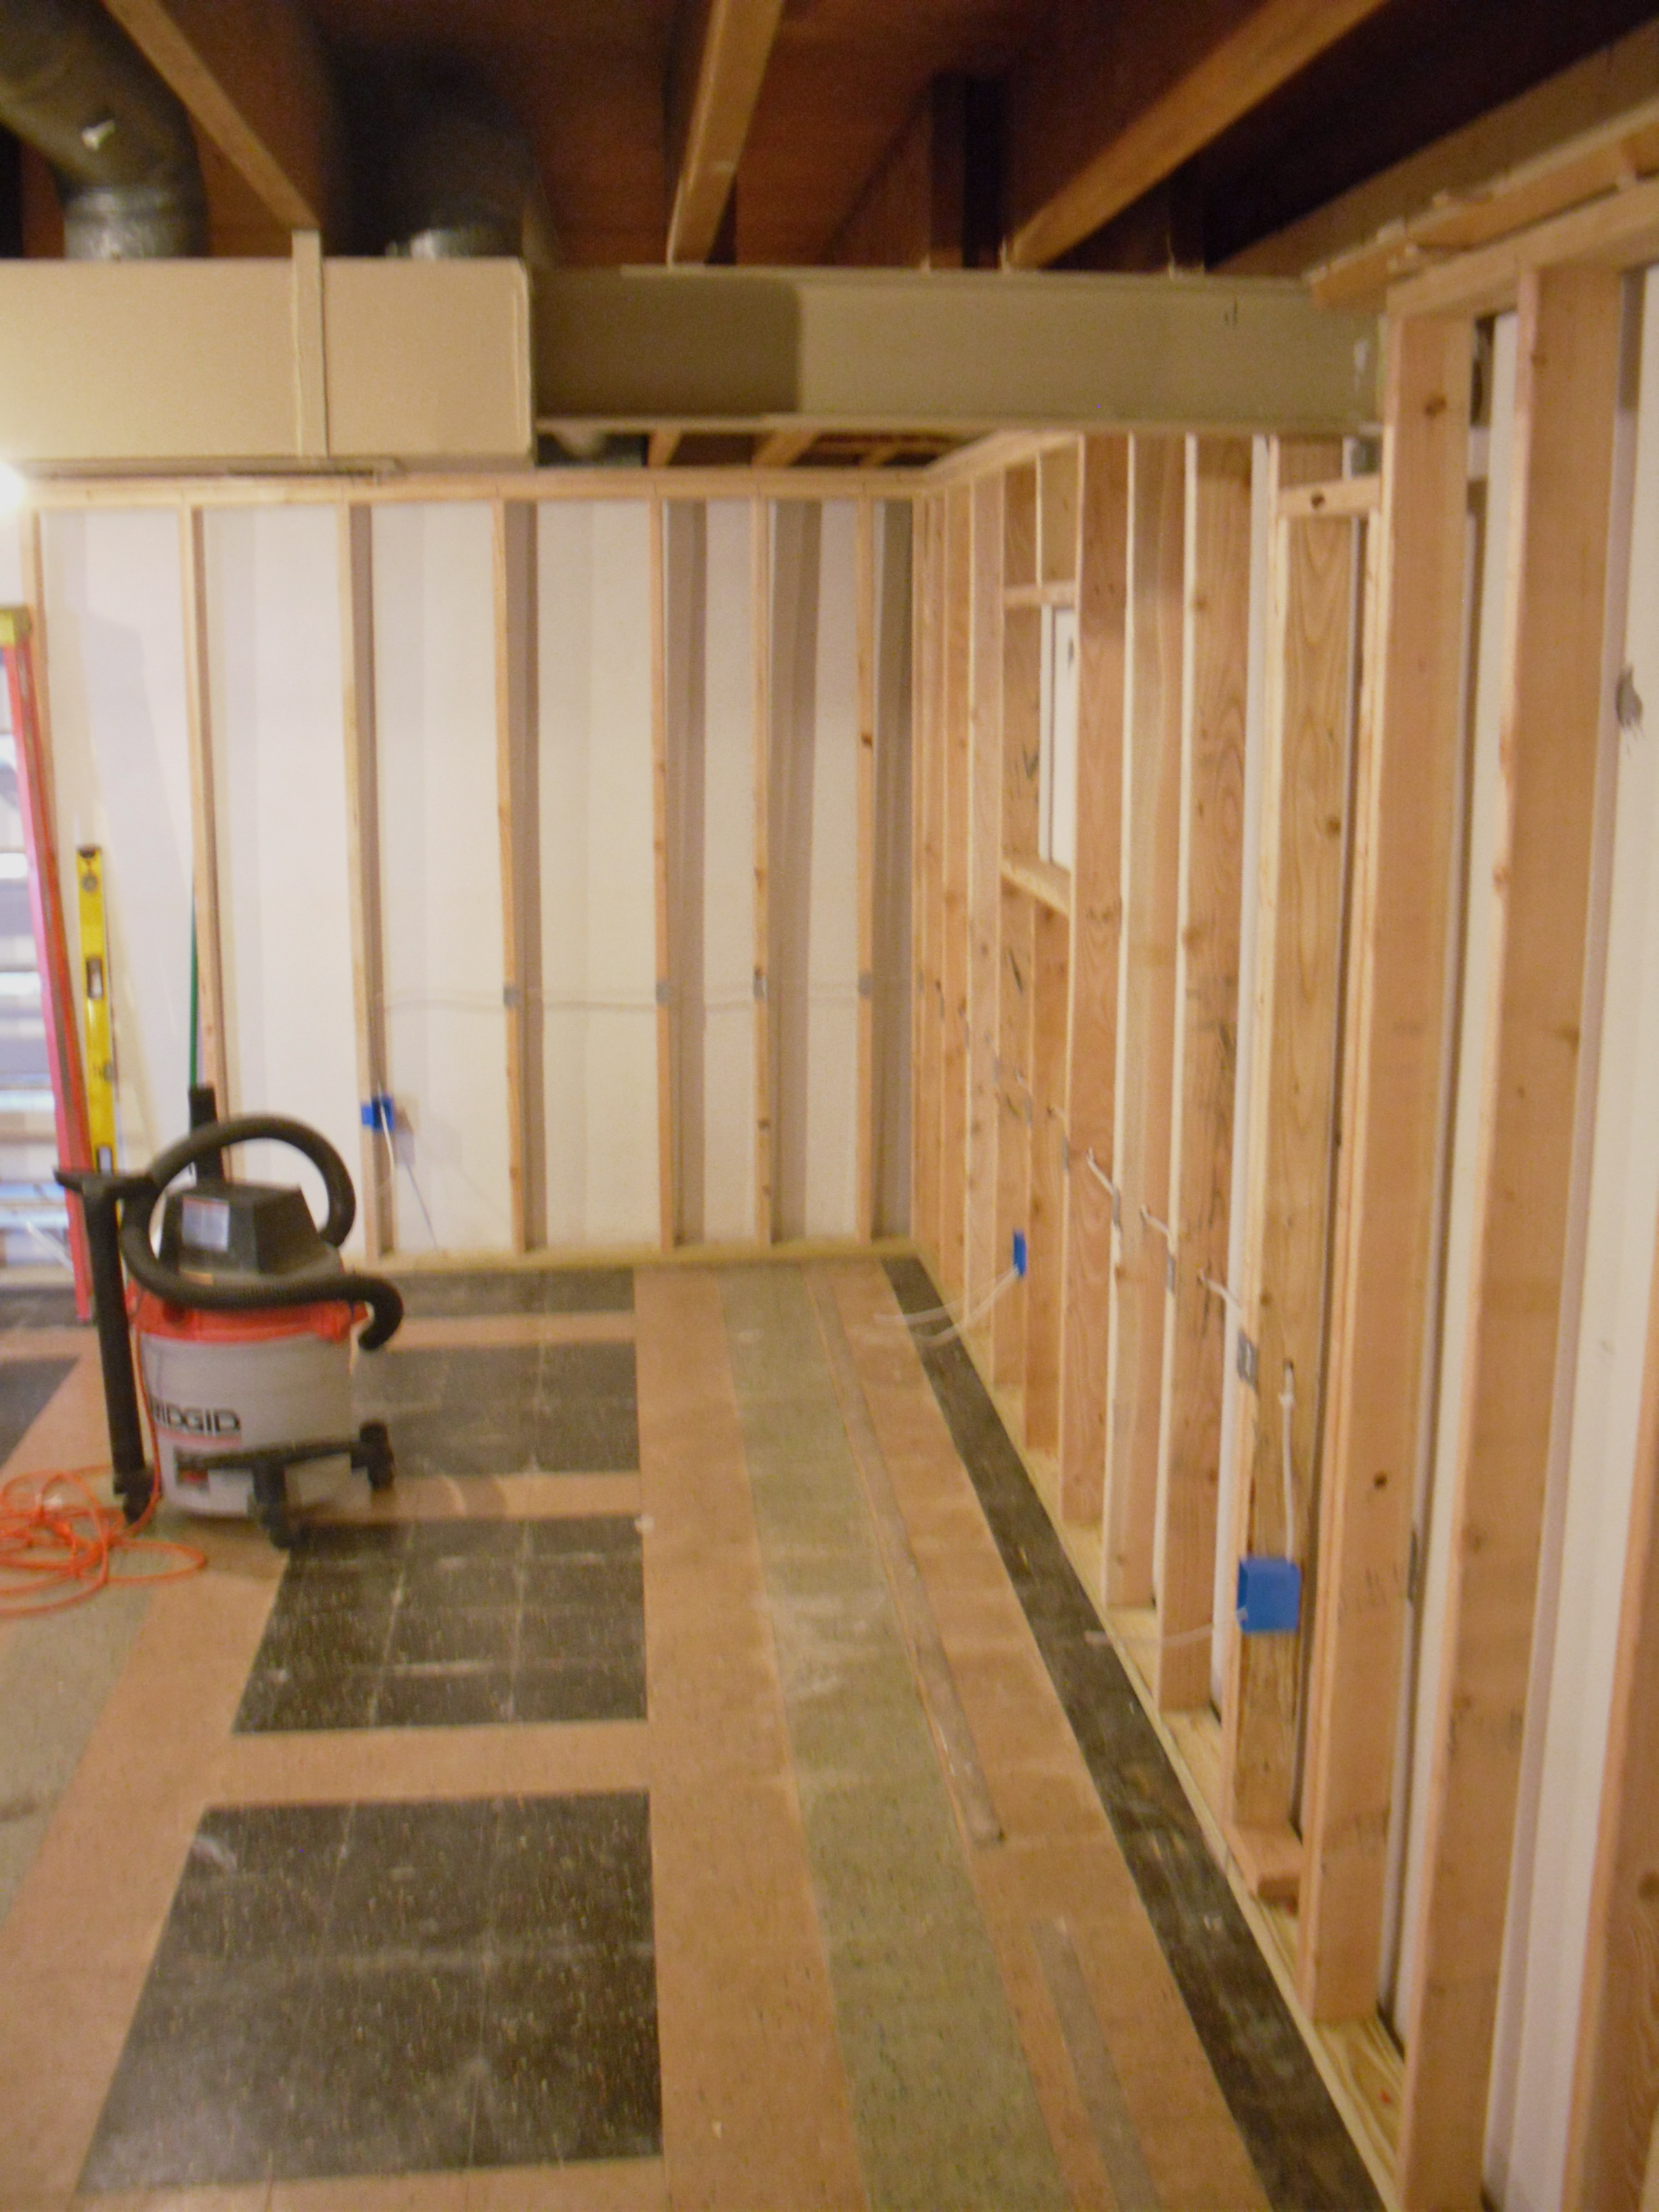 You Can See The New Door Frame To The Right Of The Bathroom, And You Can  Barely See The New Doorway ...